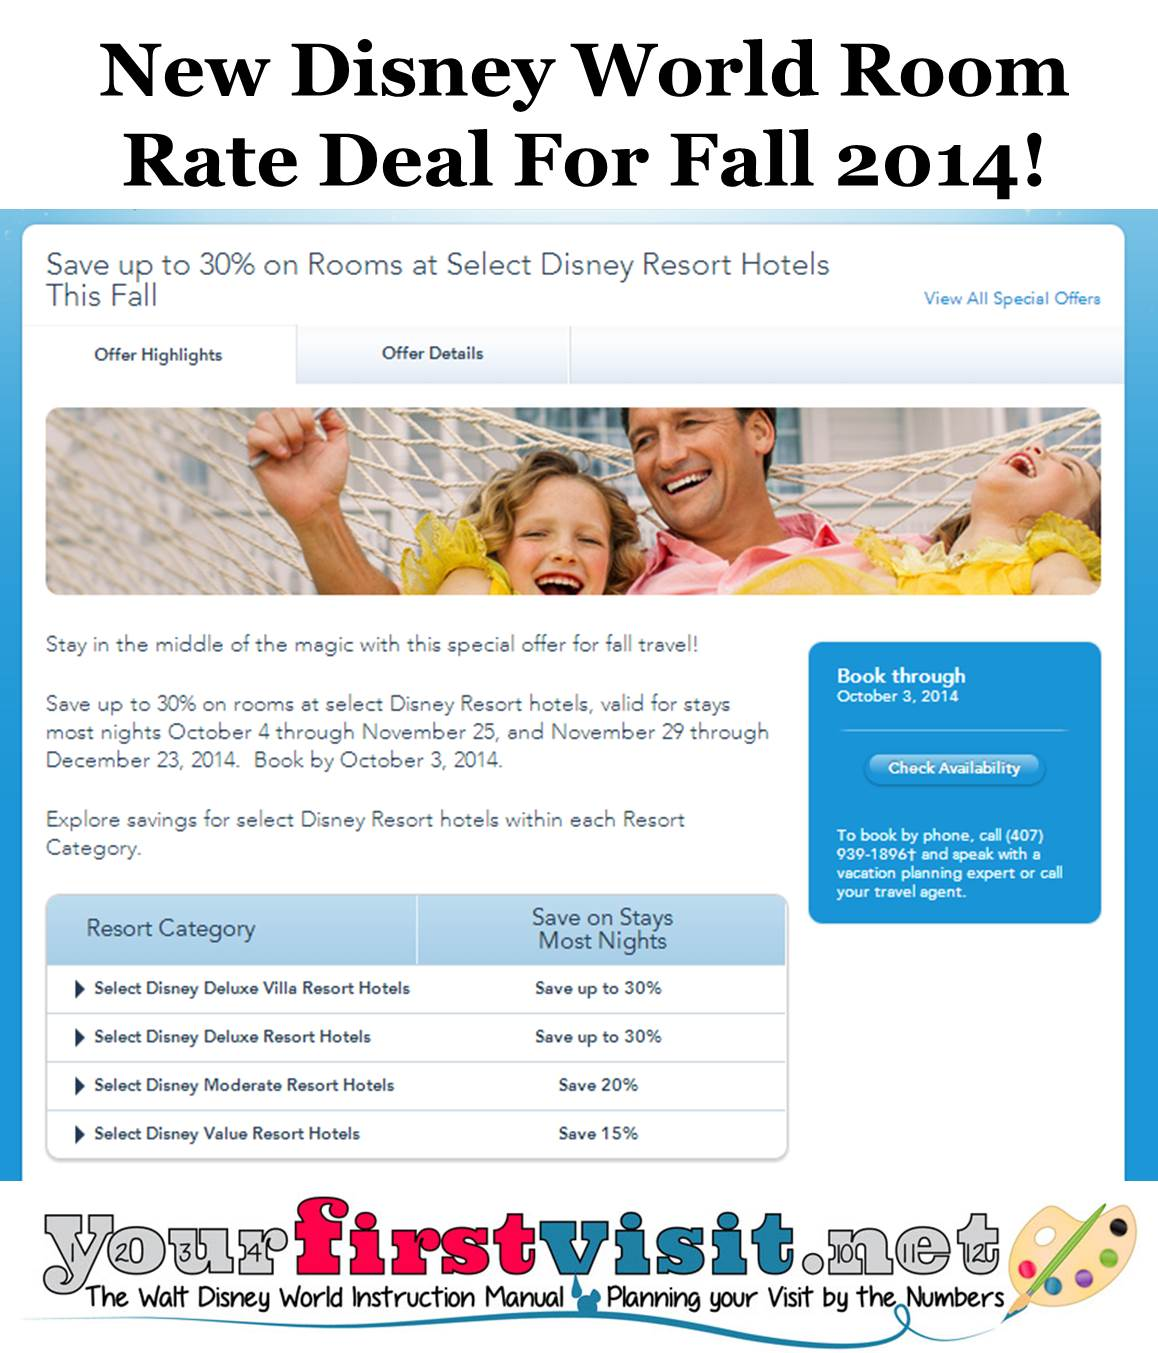 New Disney World Room Rate Deal for Fall 2014 from yourfirstvisit.net